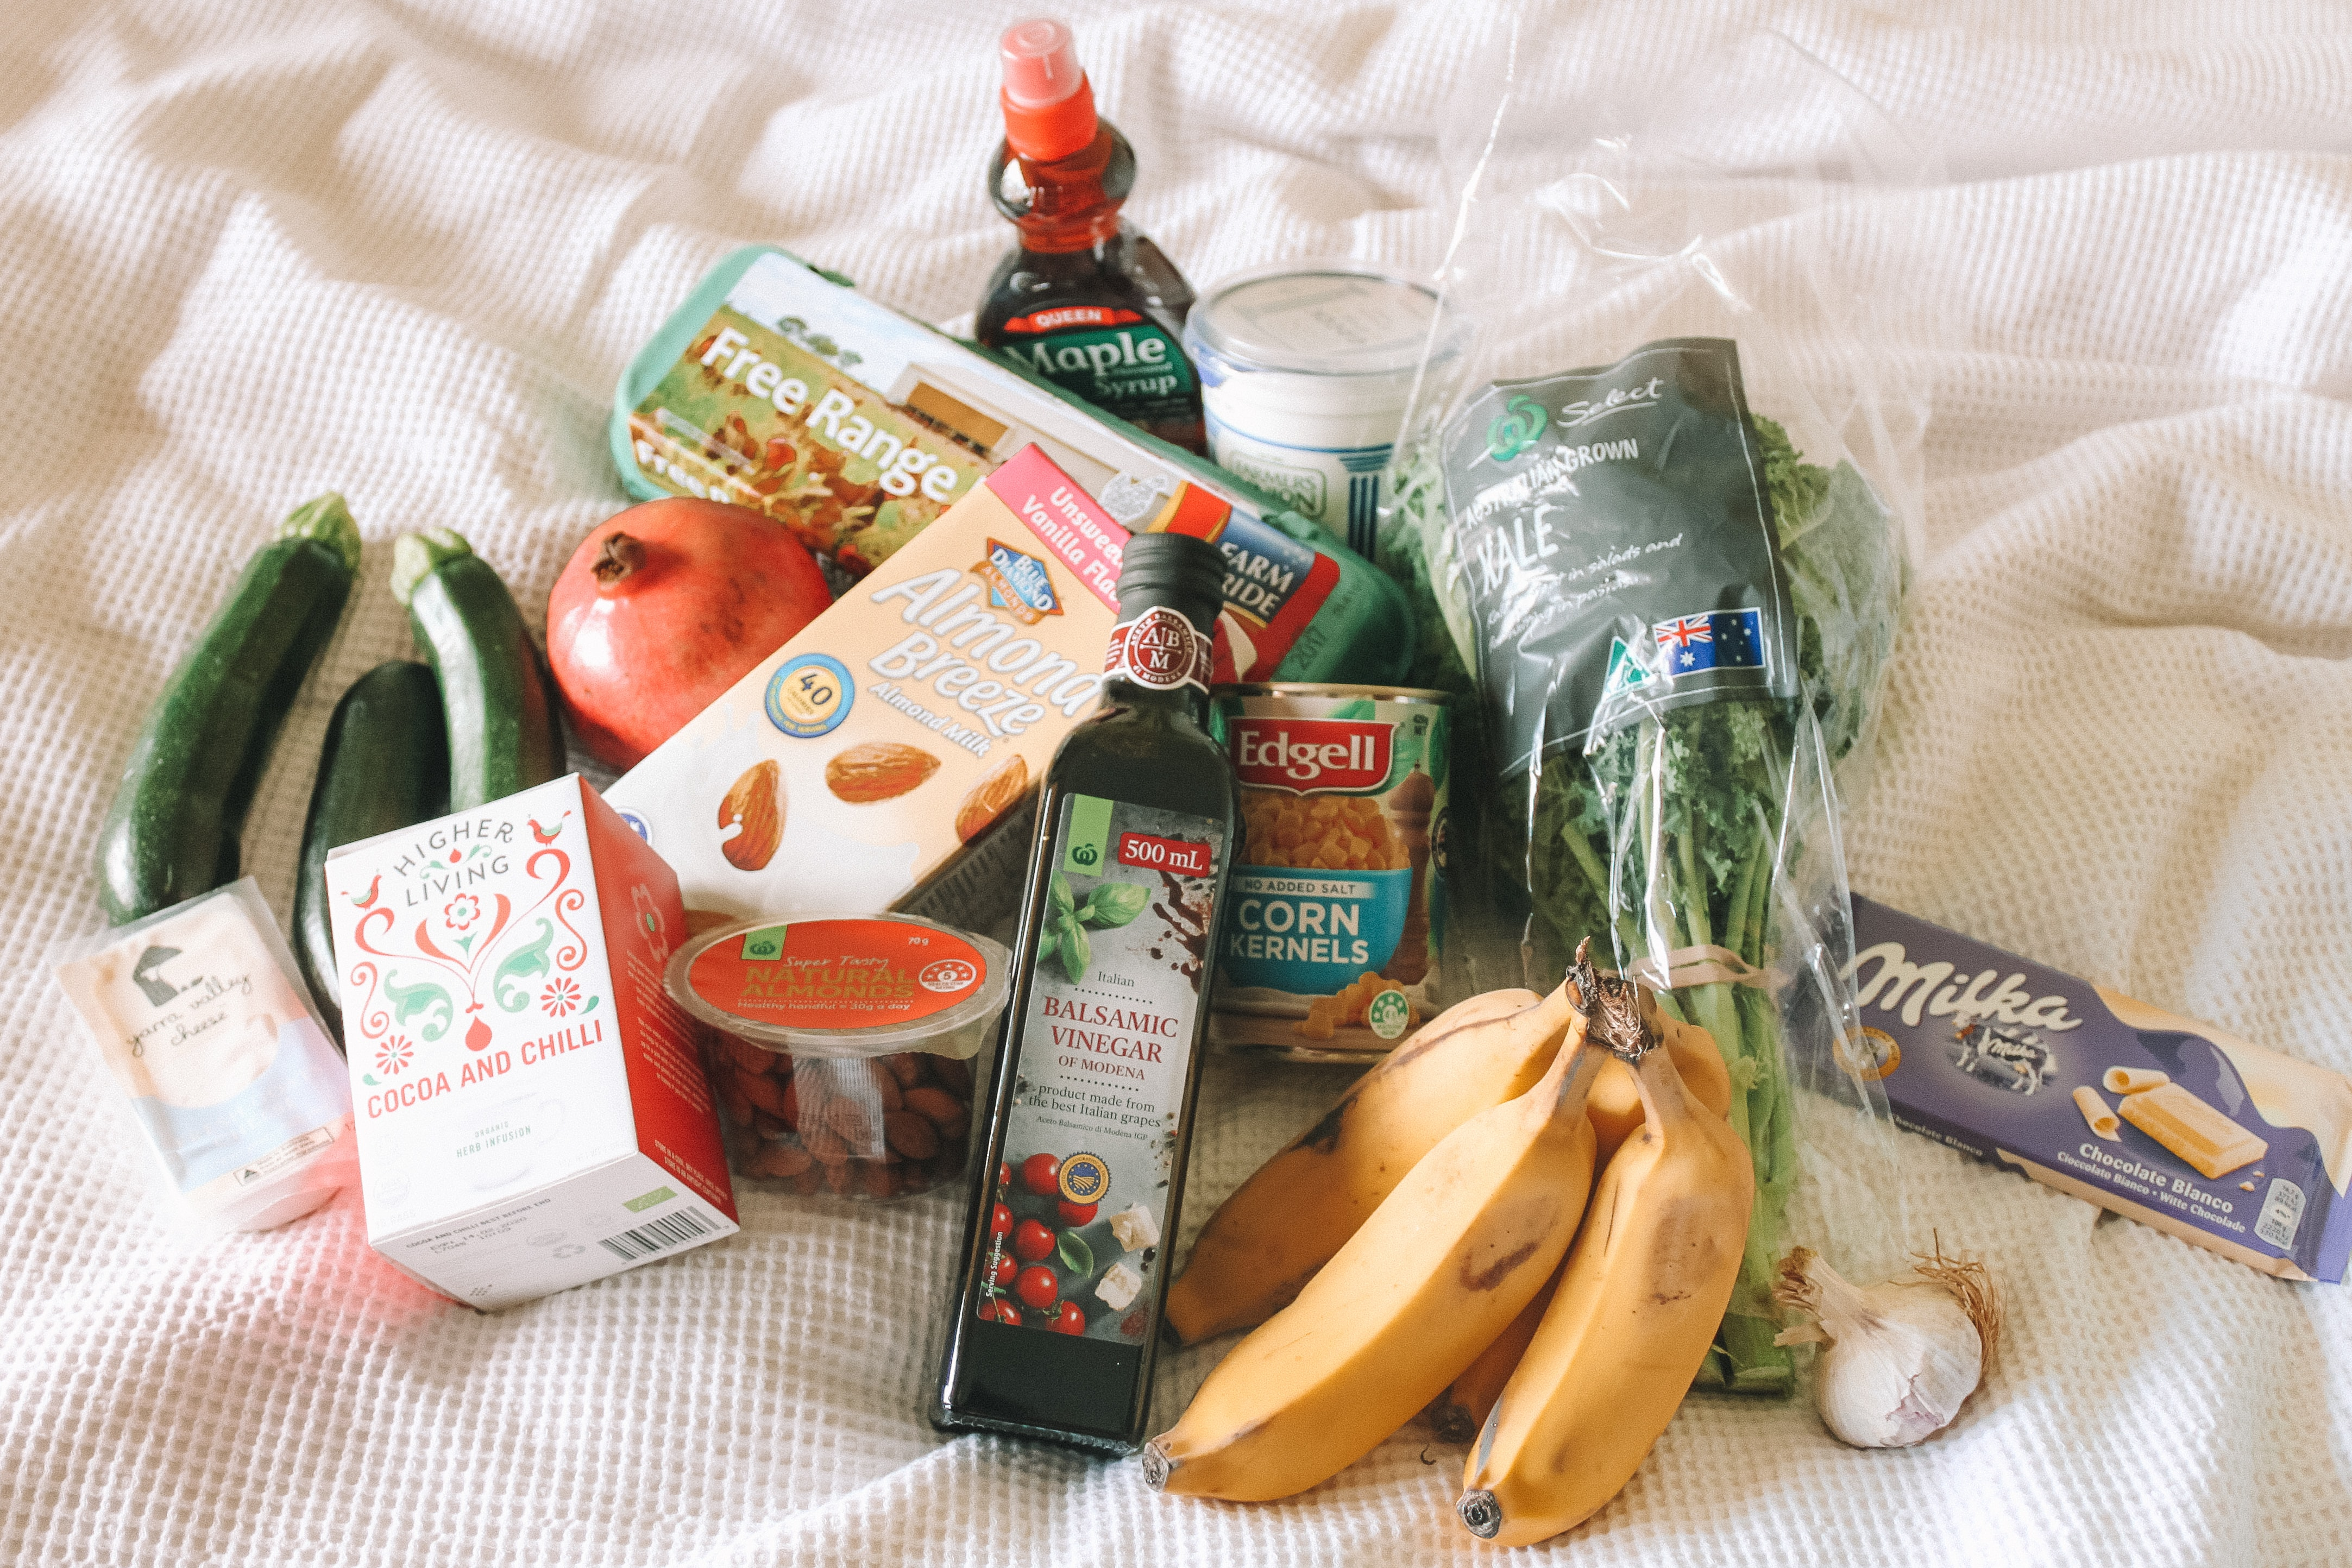 App to Make Recipes With What's in the Fridge - Learn How to Use and Download